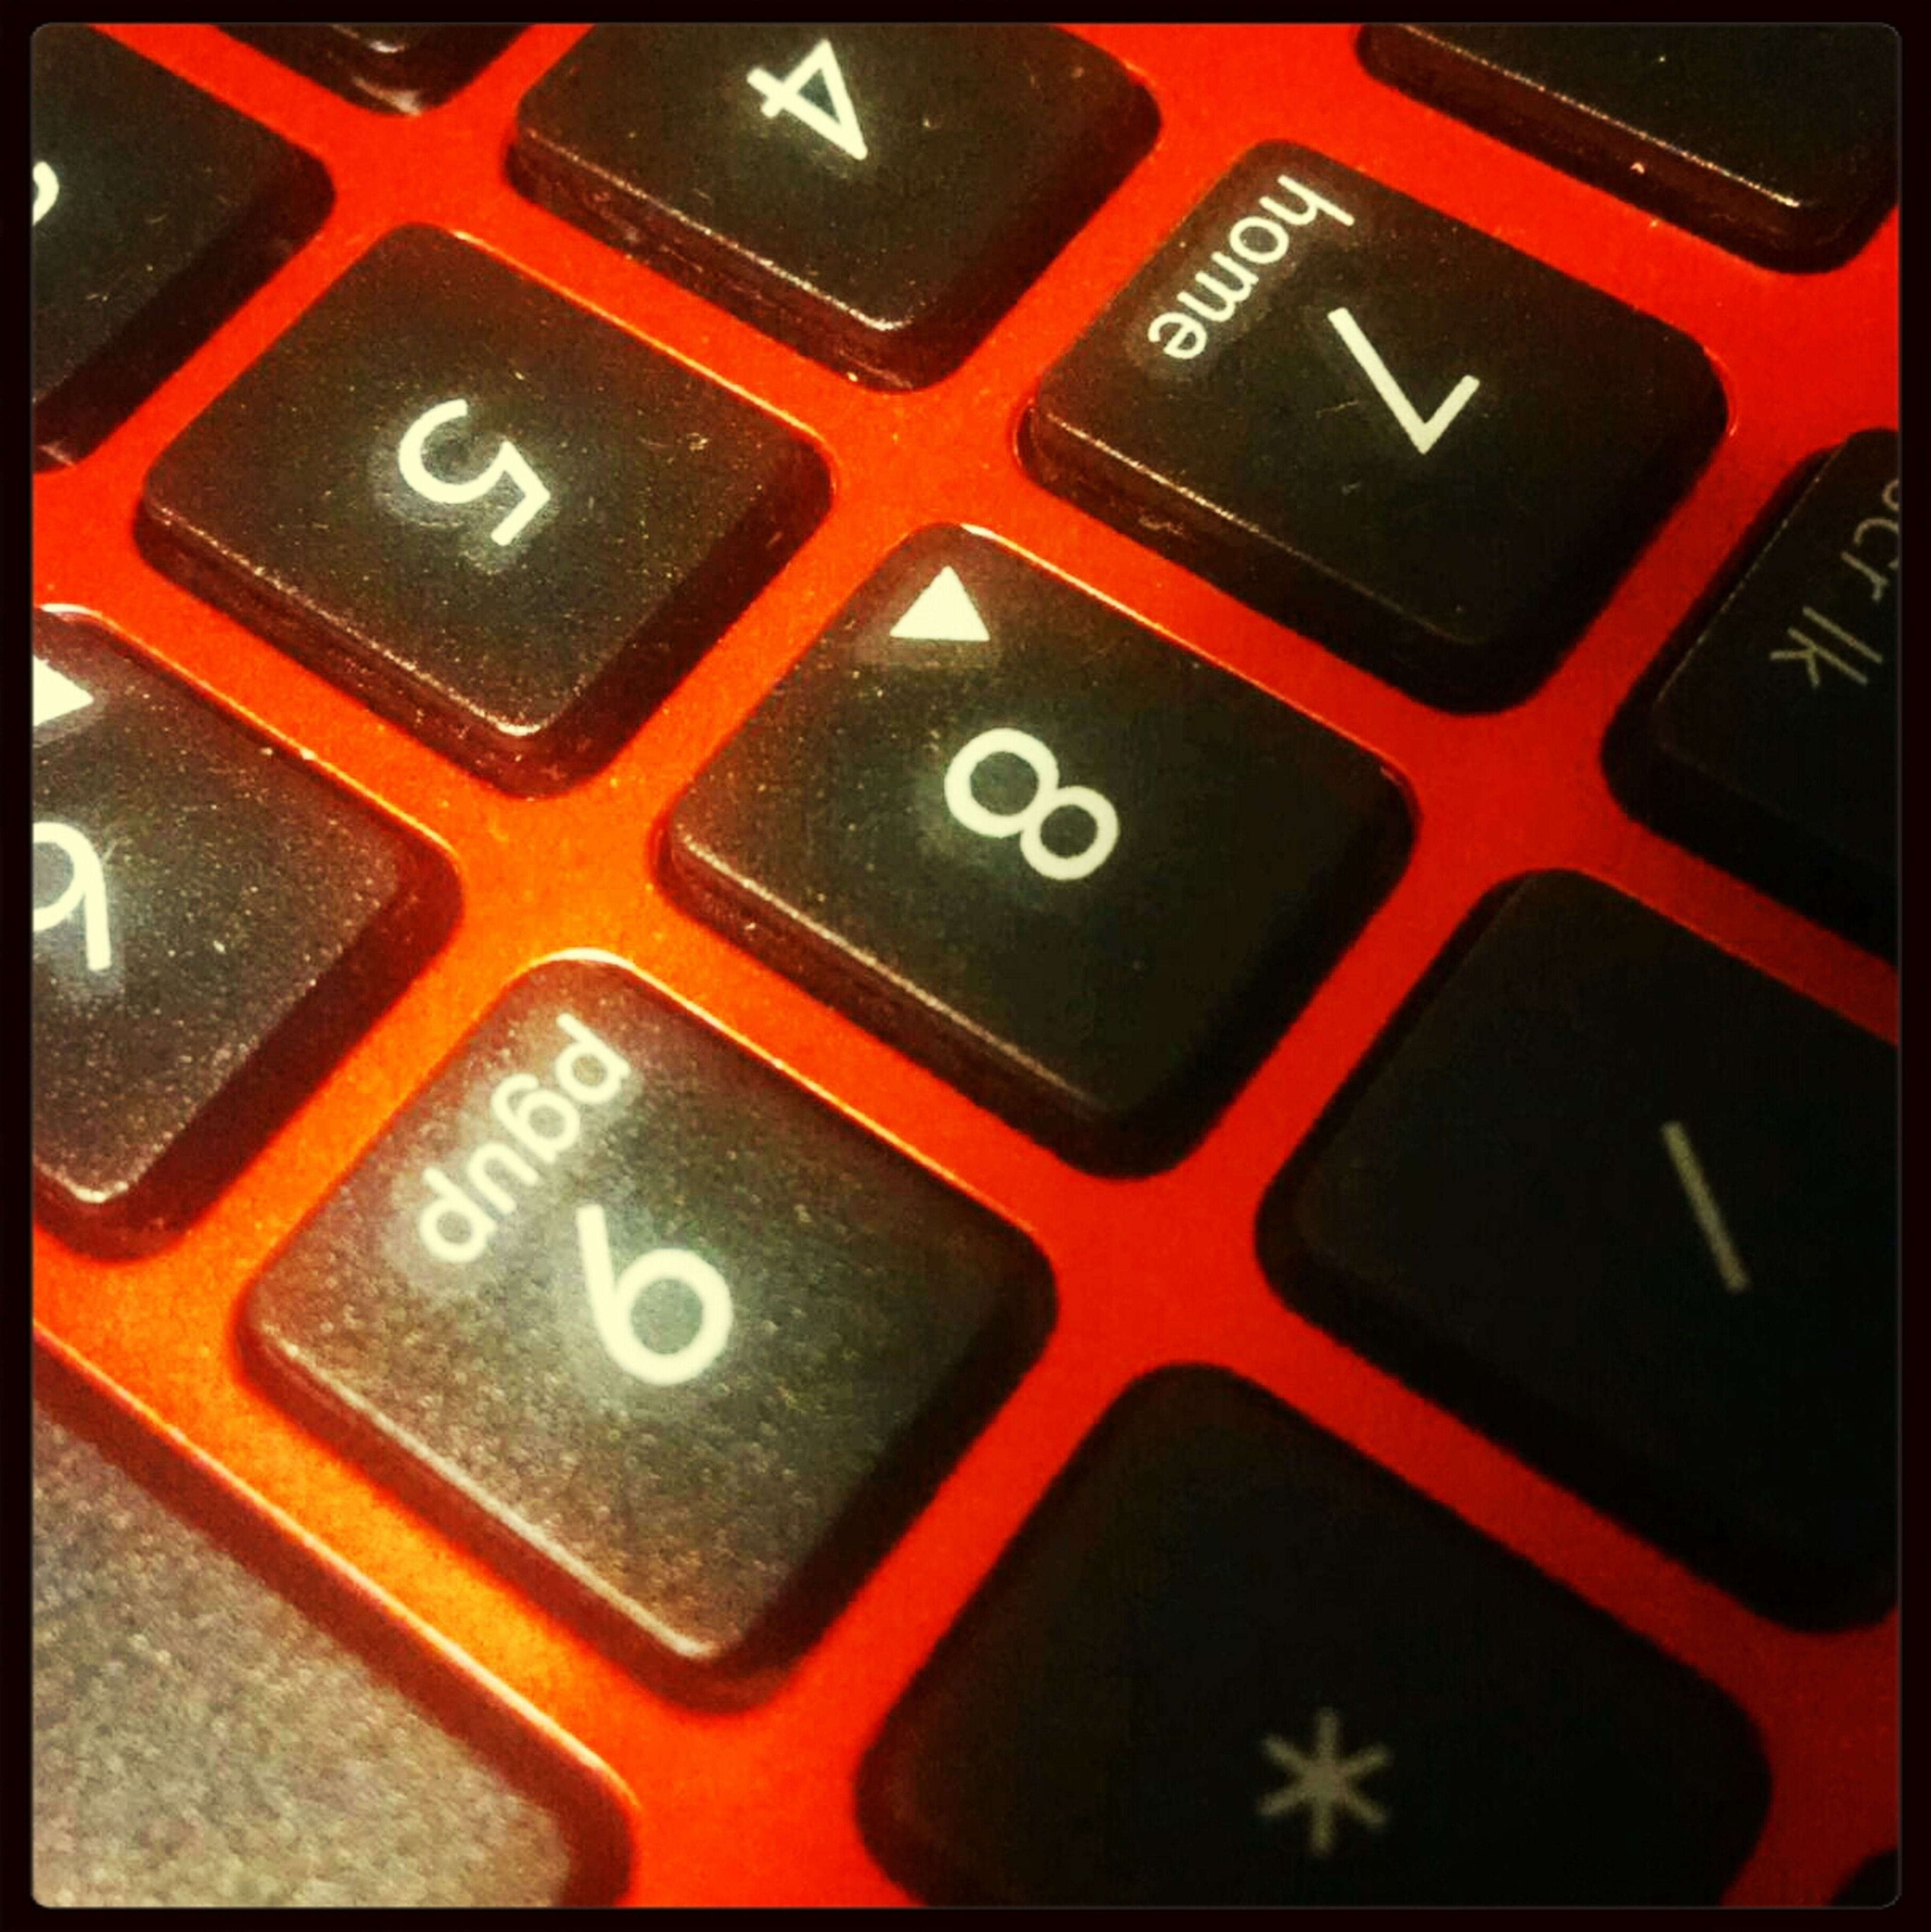 communication, indoors, close-up, technology, number, computer keyboard, connection, wireless technology, text, alphabet, computer key, western script, push button, laptop, full frame, capital letter, high angle view, computer, control, backgrounds